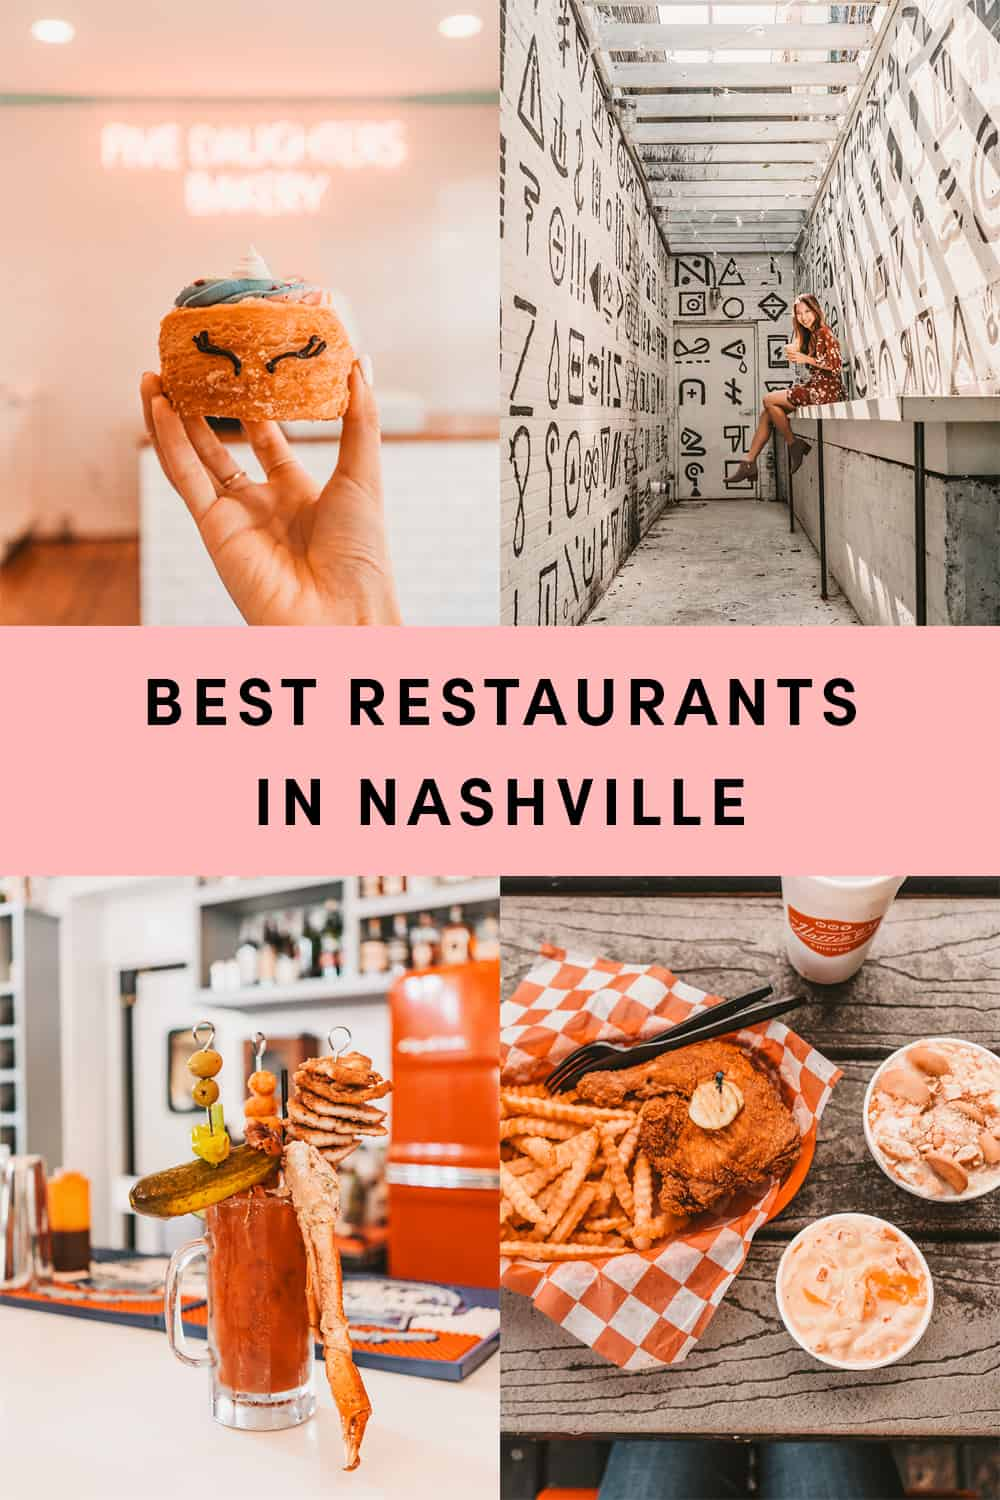 Best Restaurants in Nashville